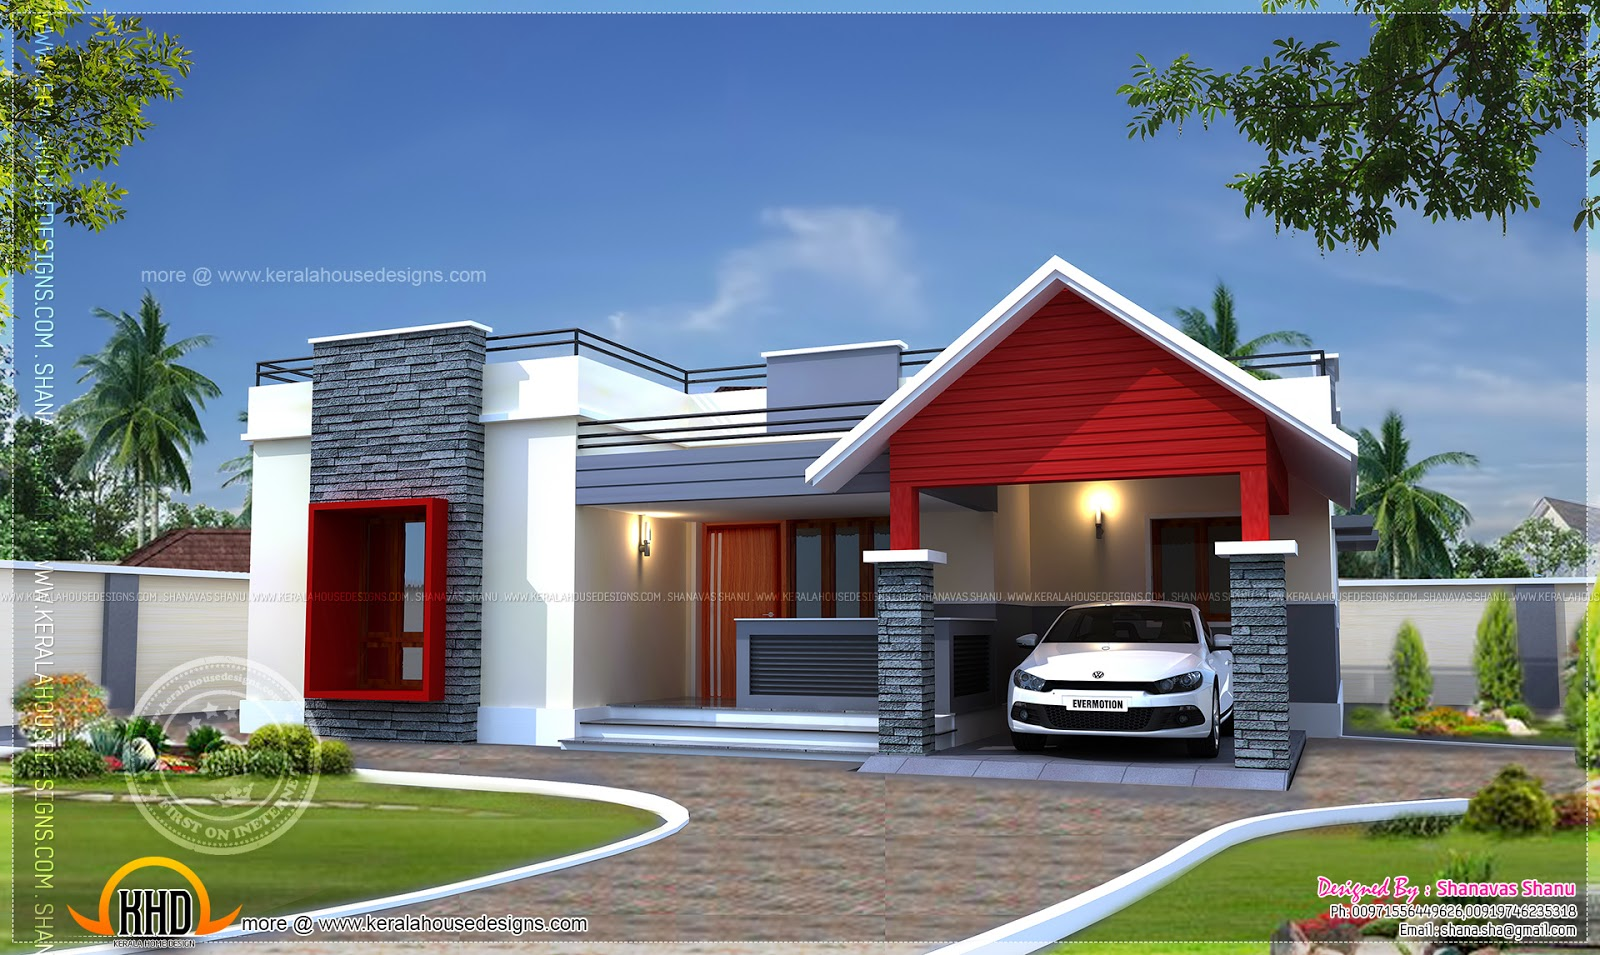 Single floor home plan in 1400 square feet kerala home for New home blueprints photos